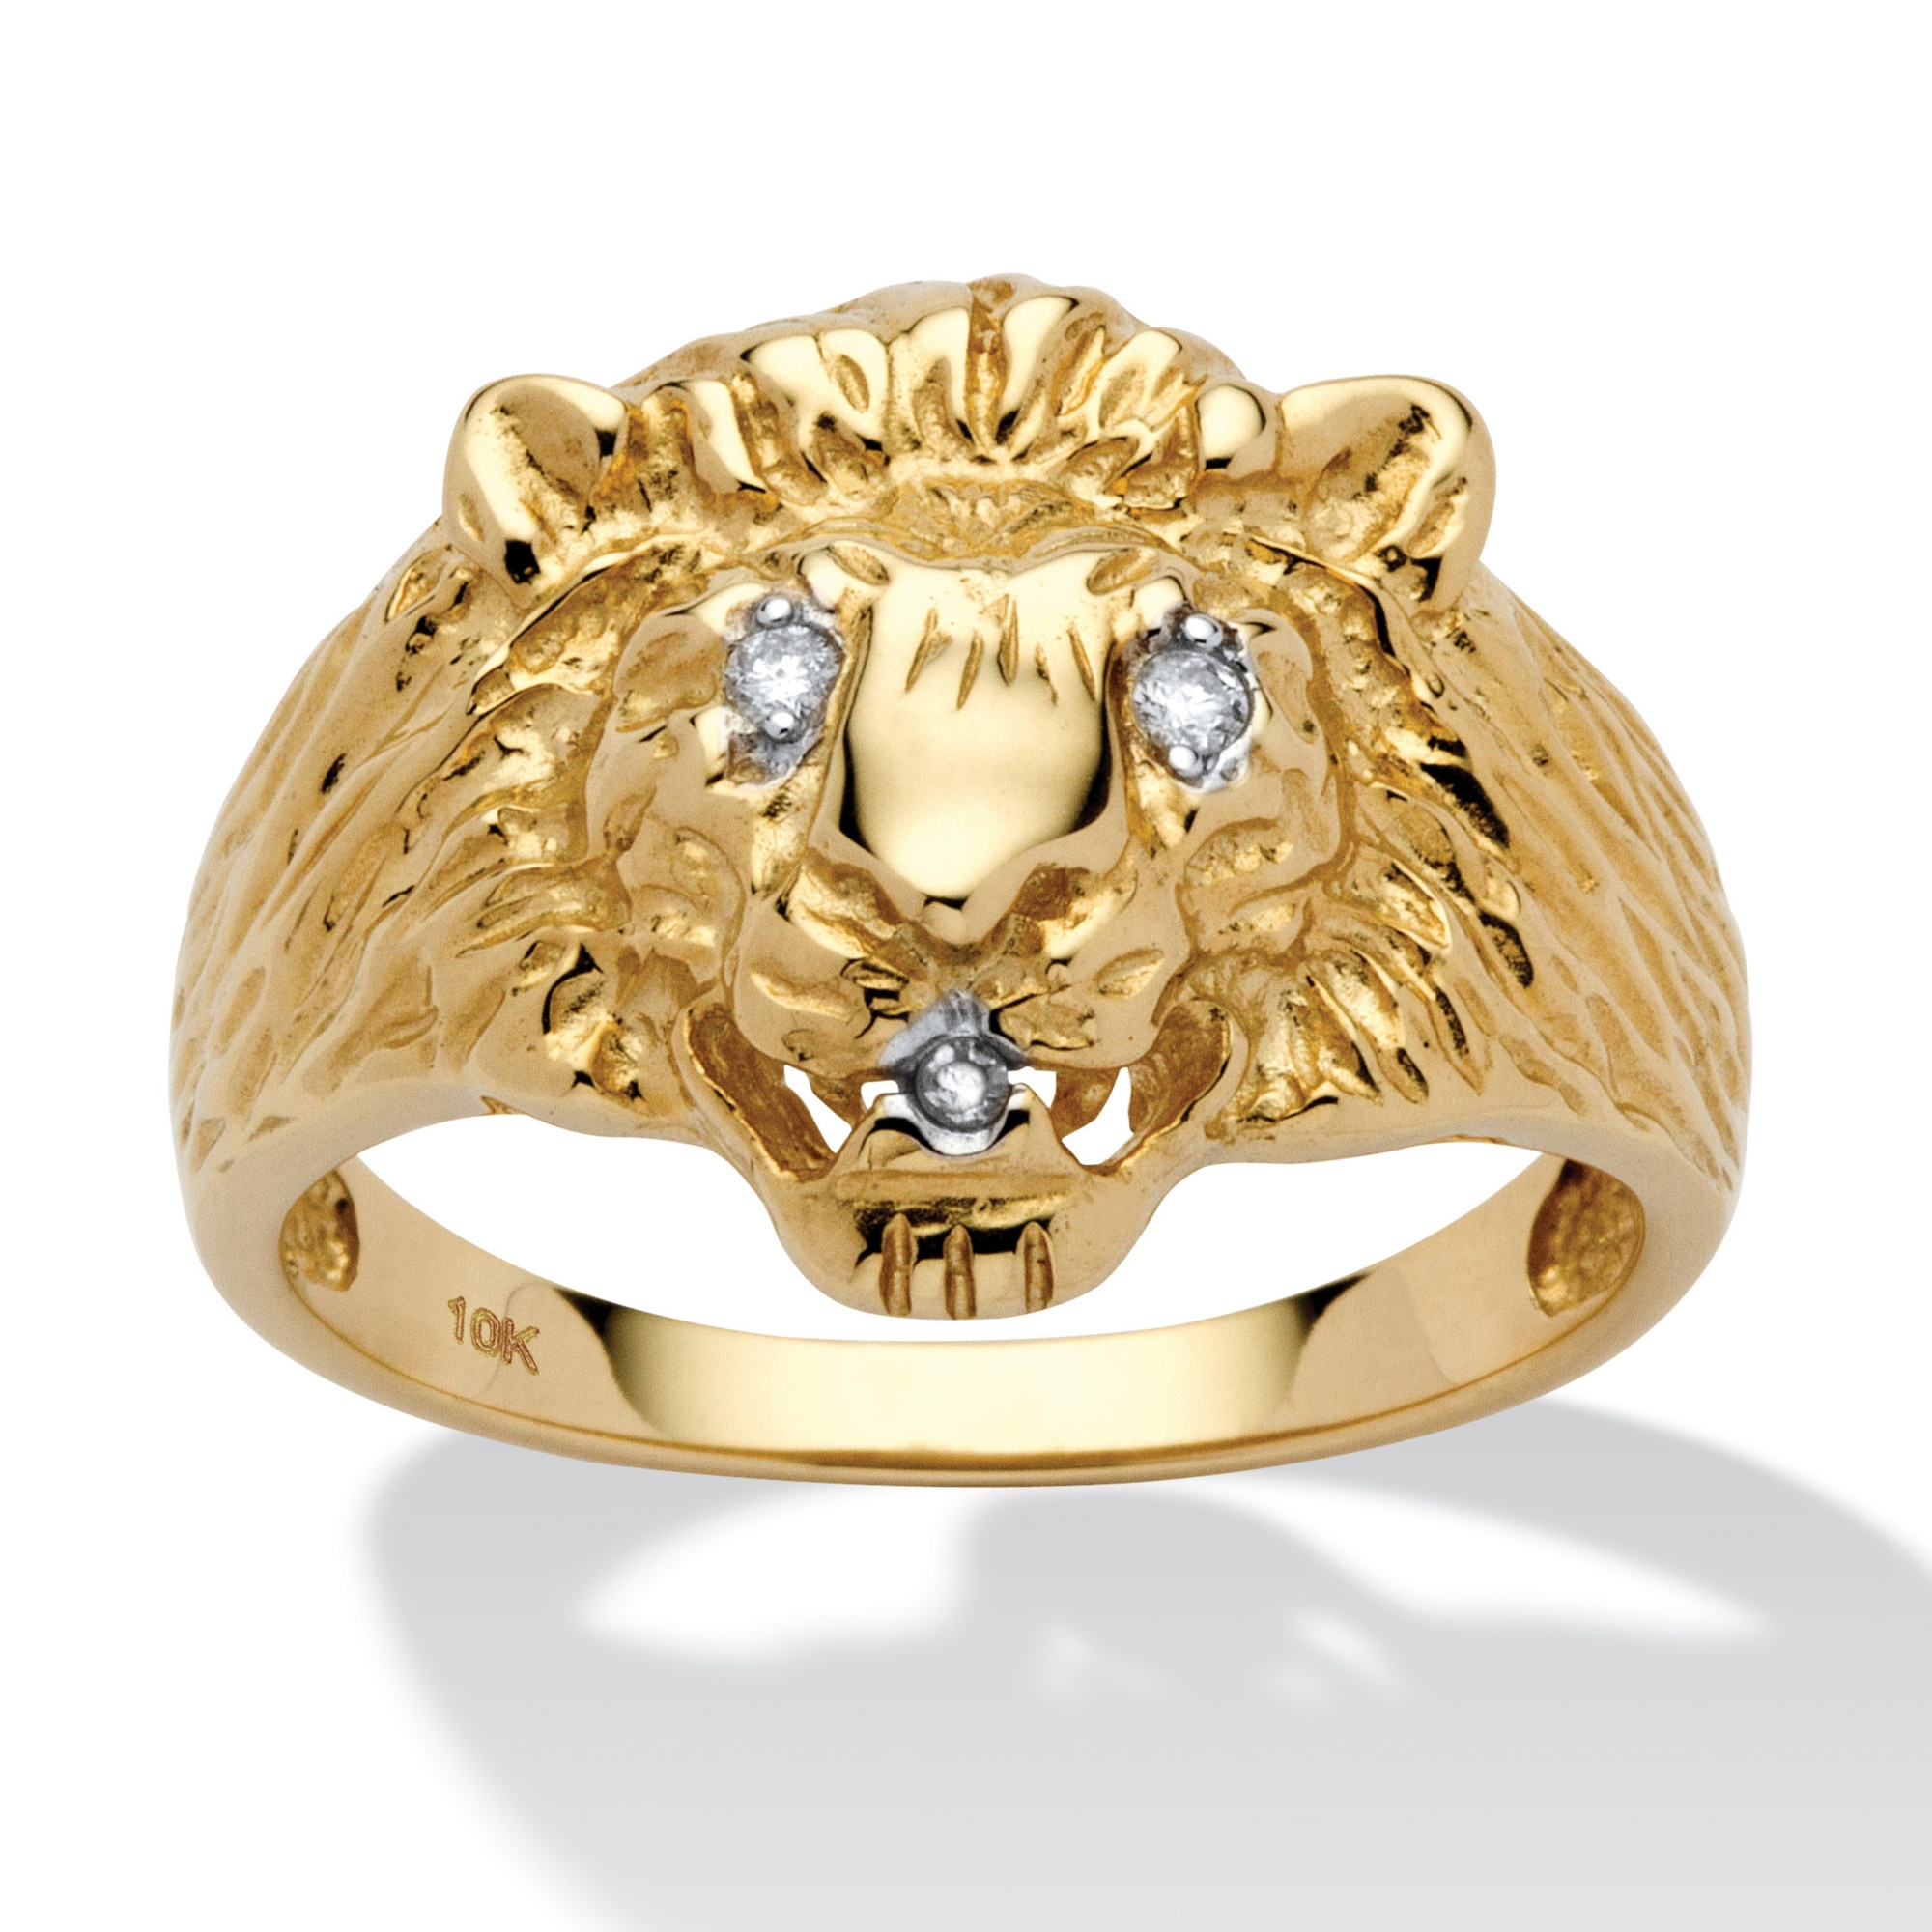 designs gold of those mens wedding man for obniiis rings com you sensational who inspiration jewelry choose